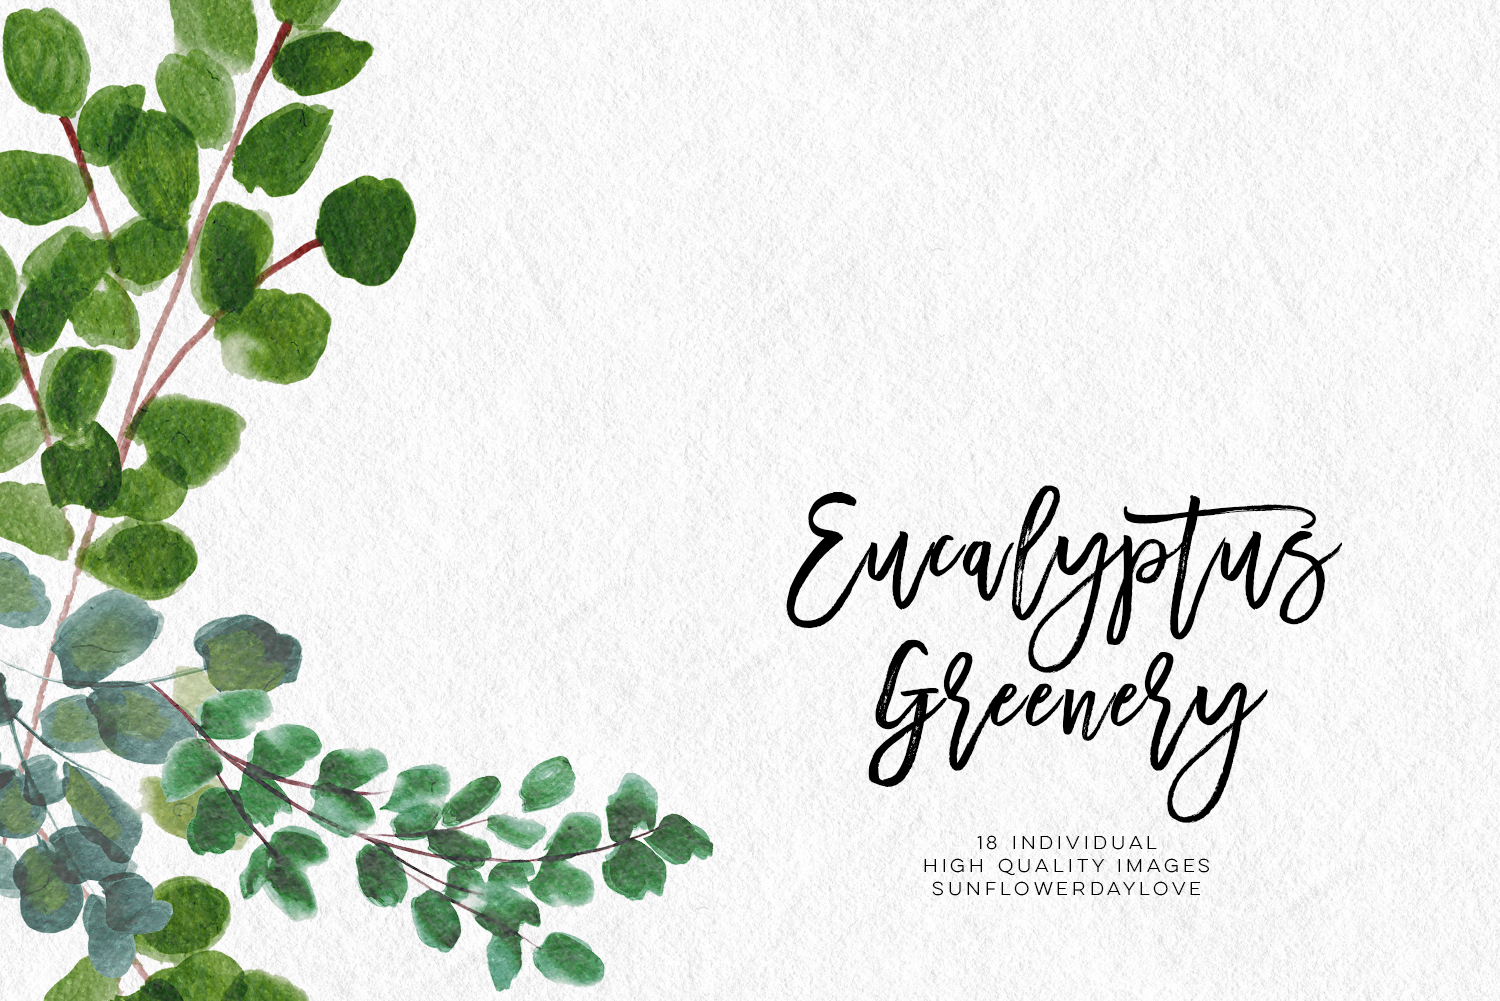 Greenery Leaf Watercolor clipart, Eucalyptus clipart, Watercolor greenery  flower, Watercolour botanical Wreath Leaves, Leaf clipart, wedding.